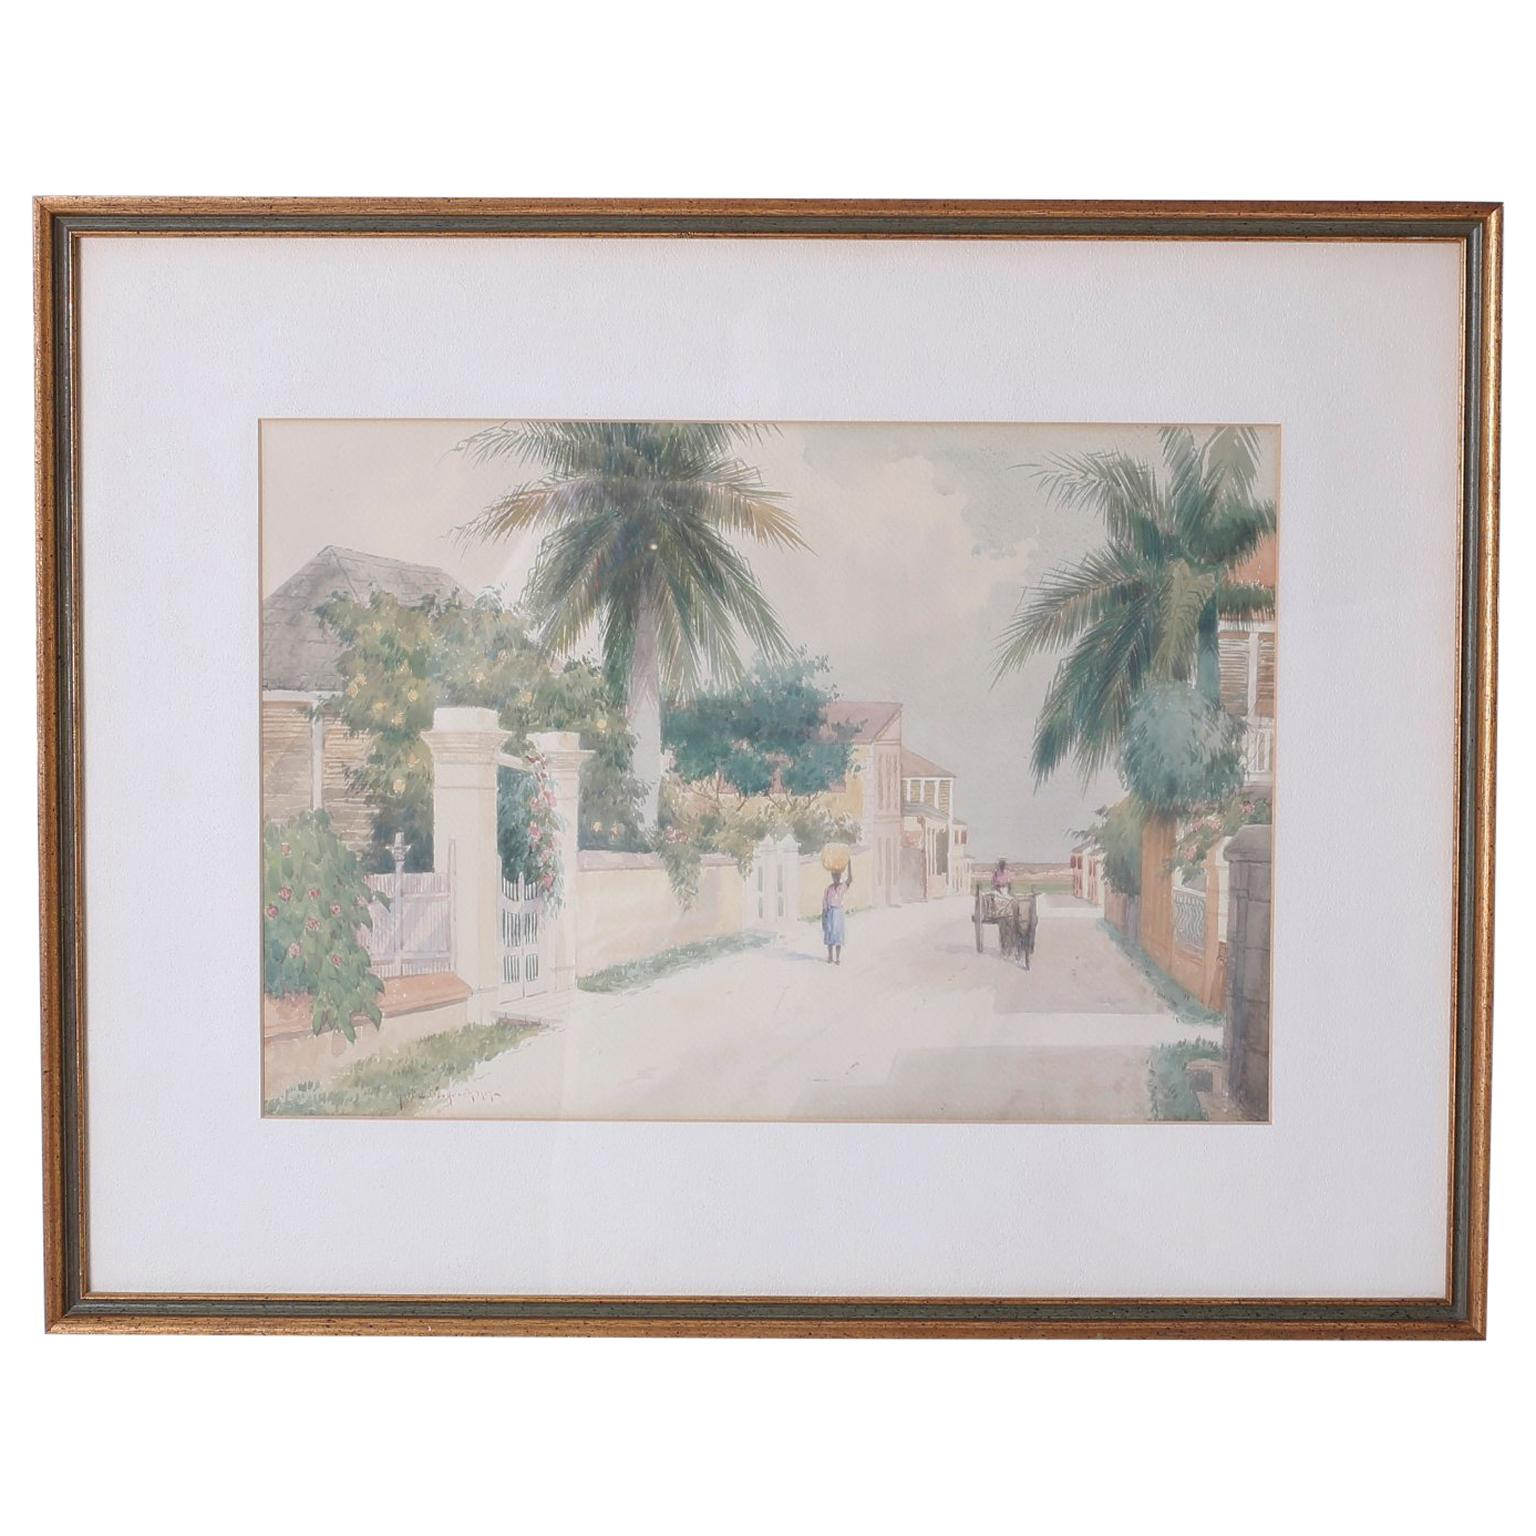 Bahamian Street Scene Watercolor Painting by Hartwell Leon Woodcock